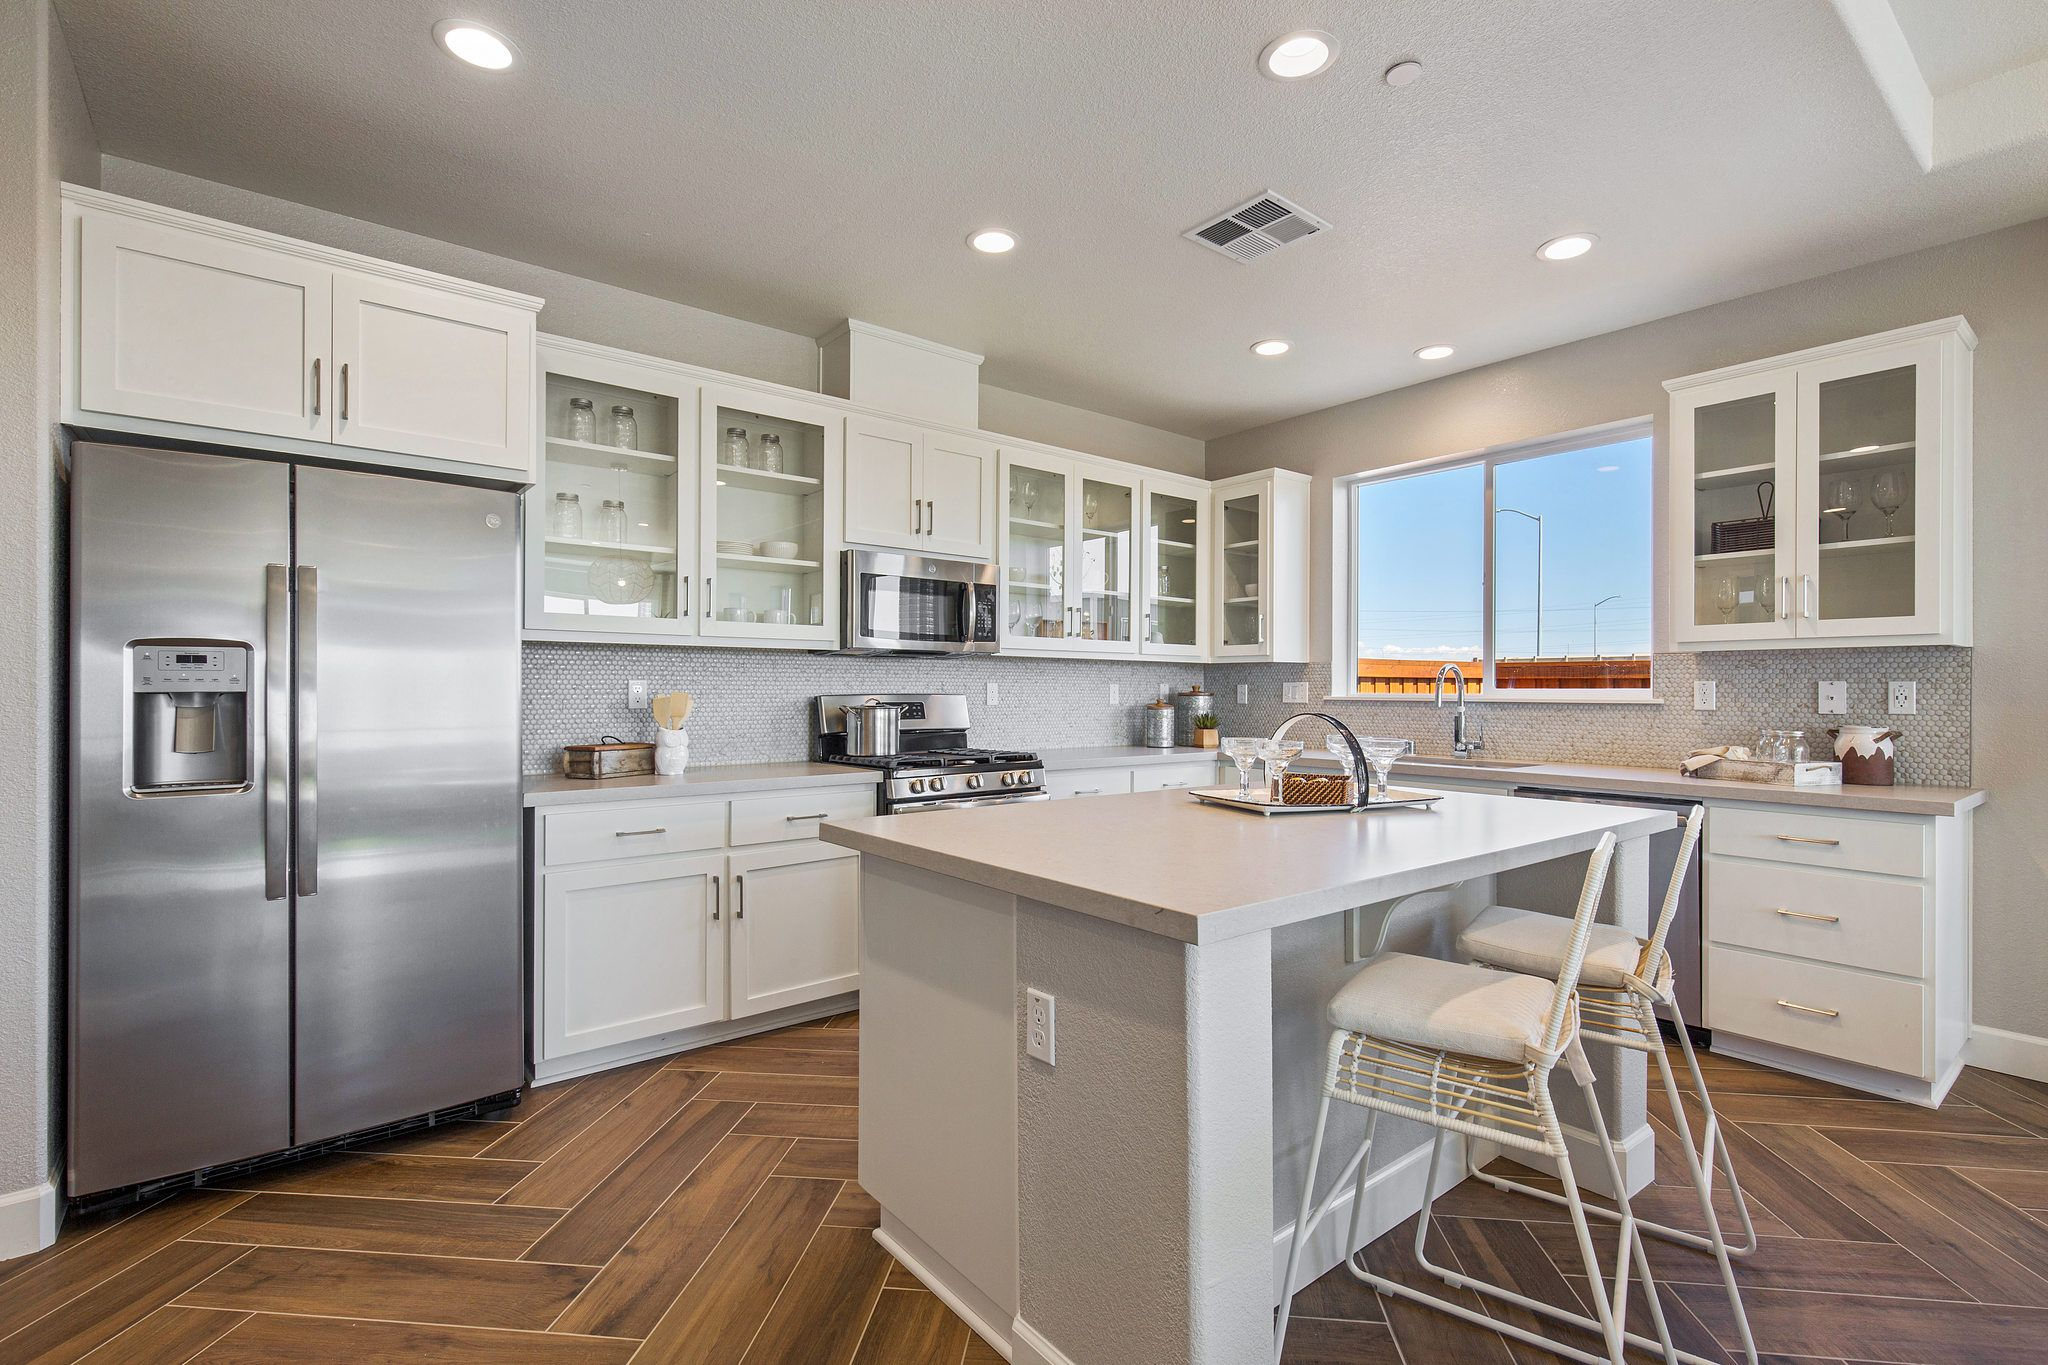 Kitchen featured in the Alcott By Seeno Homes in Vallejo-Napa, CA